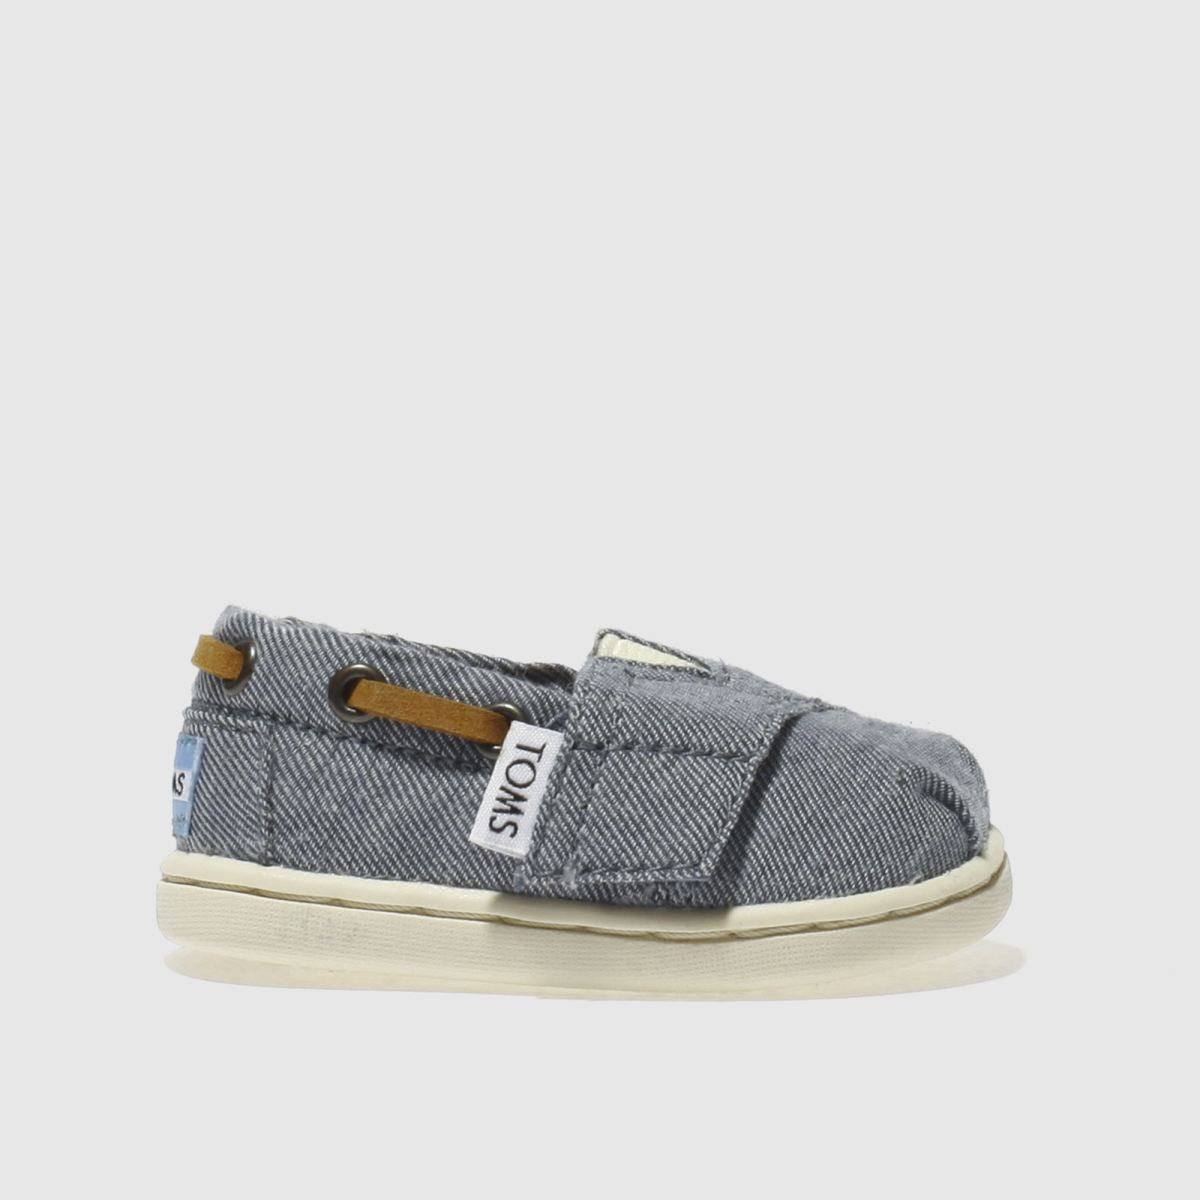 toms navy bimini Girls Baby Shoes